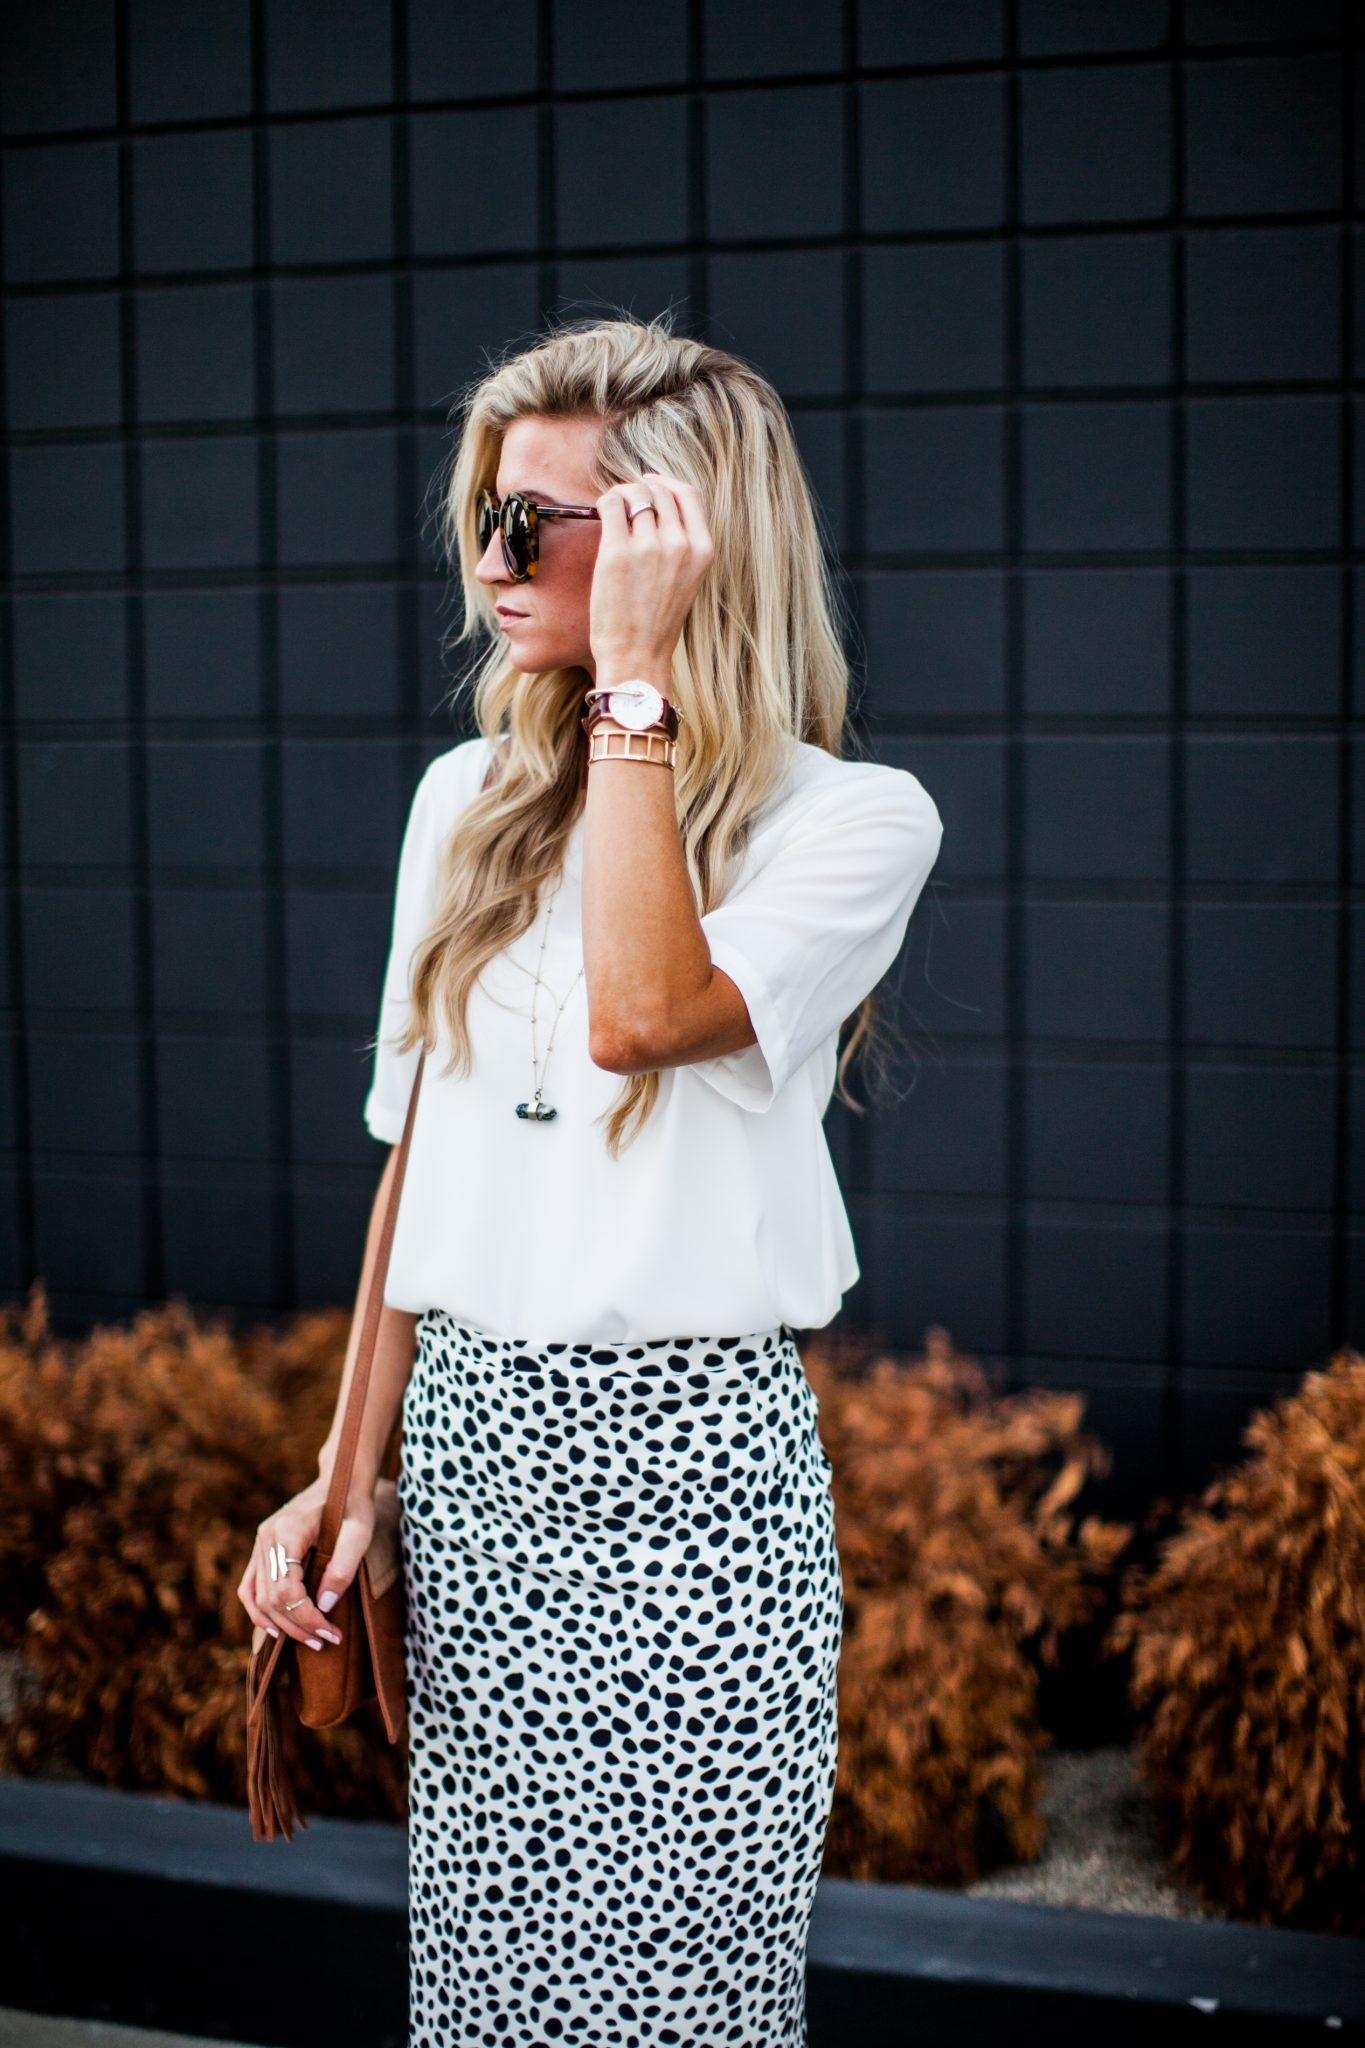 Animal dalmation print pencil skirt tutorial-0127